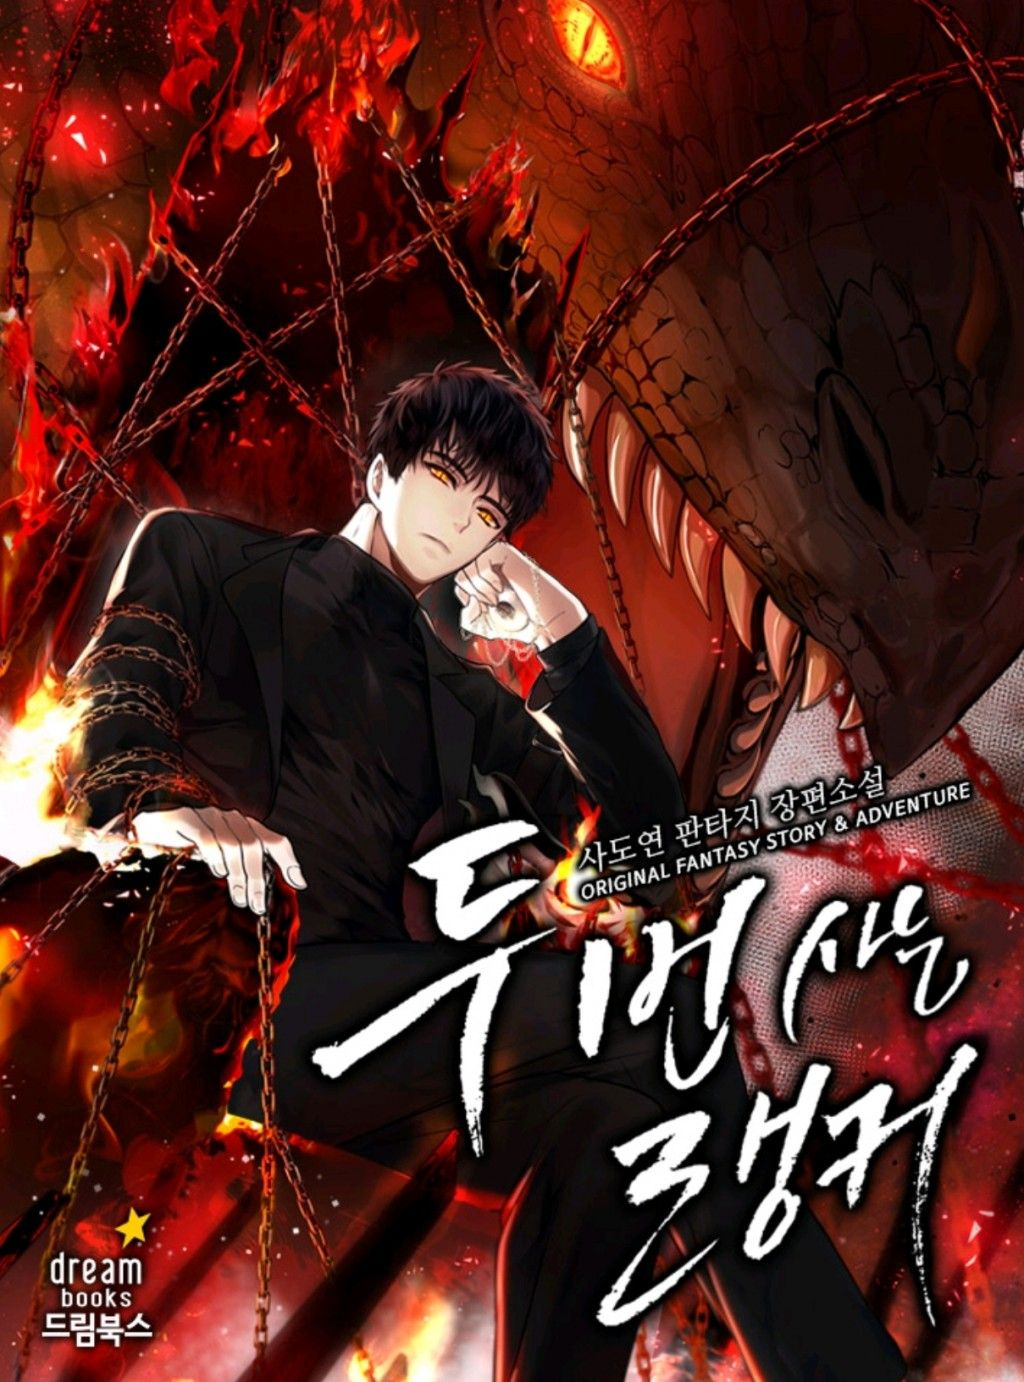 Ranker Who Lives A Second Time chapter 86